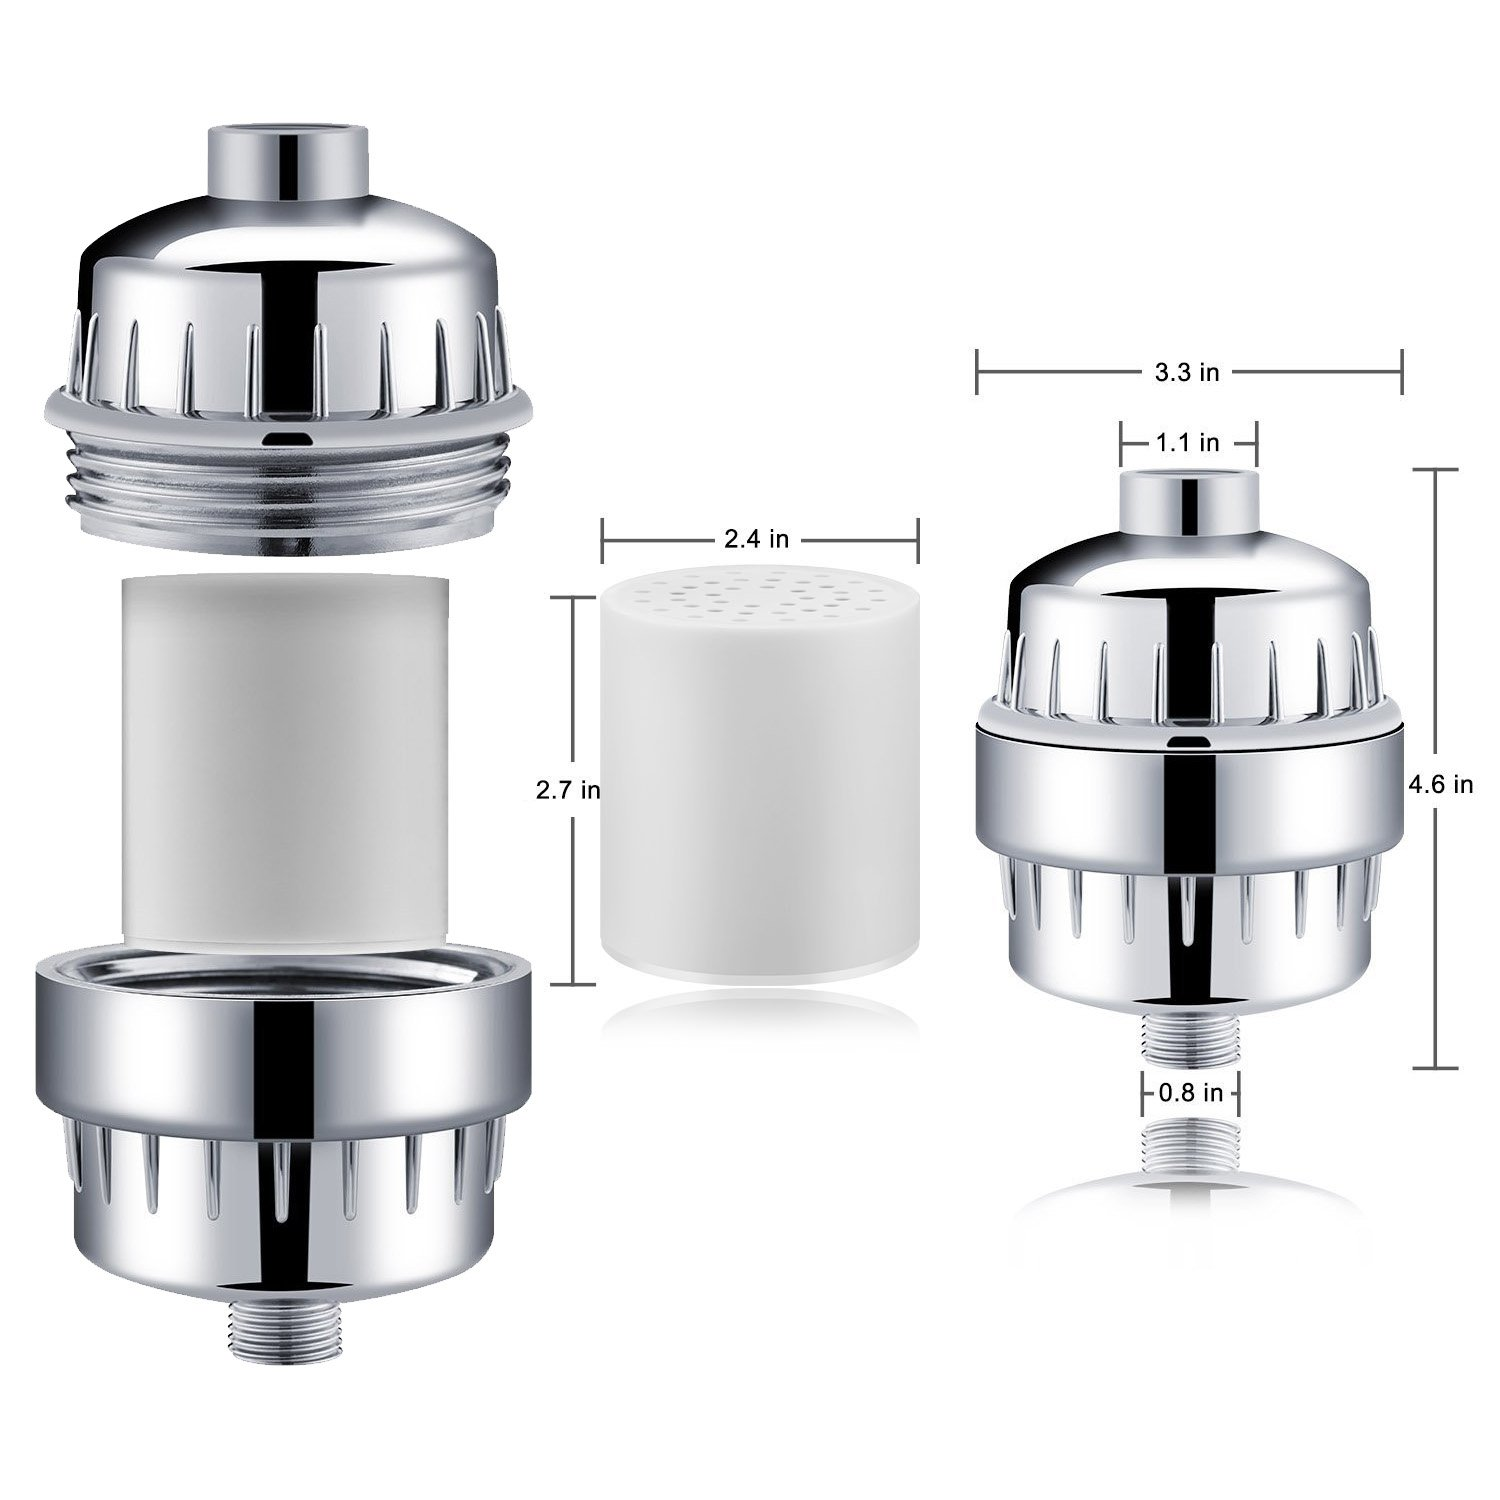 Kimfly Shower Filter, 12-Stage Shower System, Remove Chlorine, Fluoride, Odors, Heavy Metals, Bacteria- Boosts Health of Your Skin and Hair, 2 Replaceable Cartridges Included